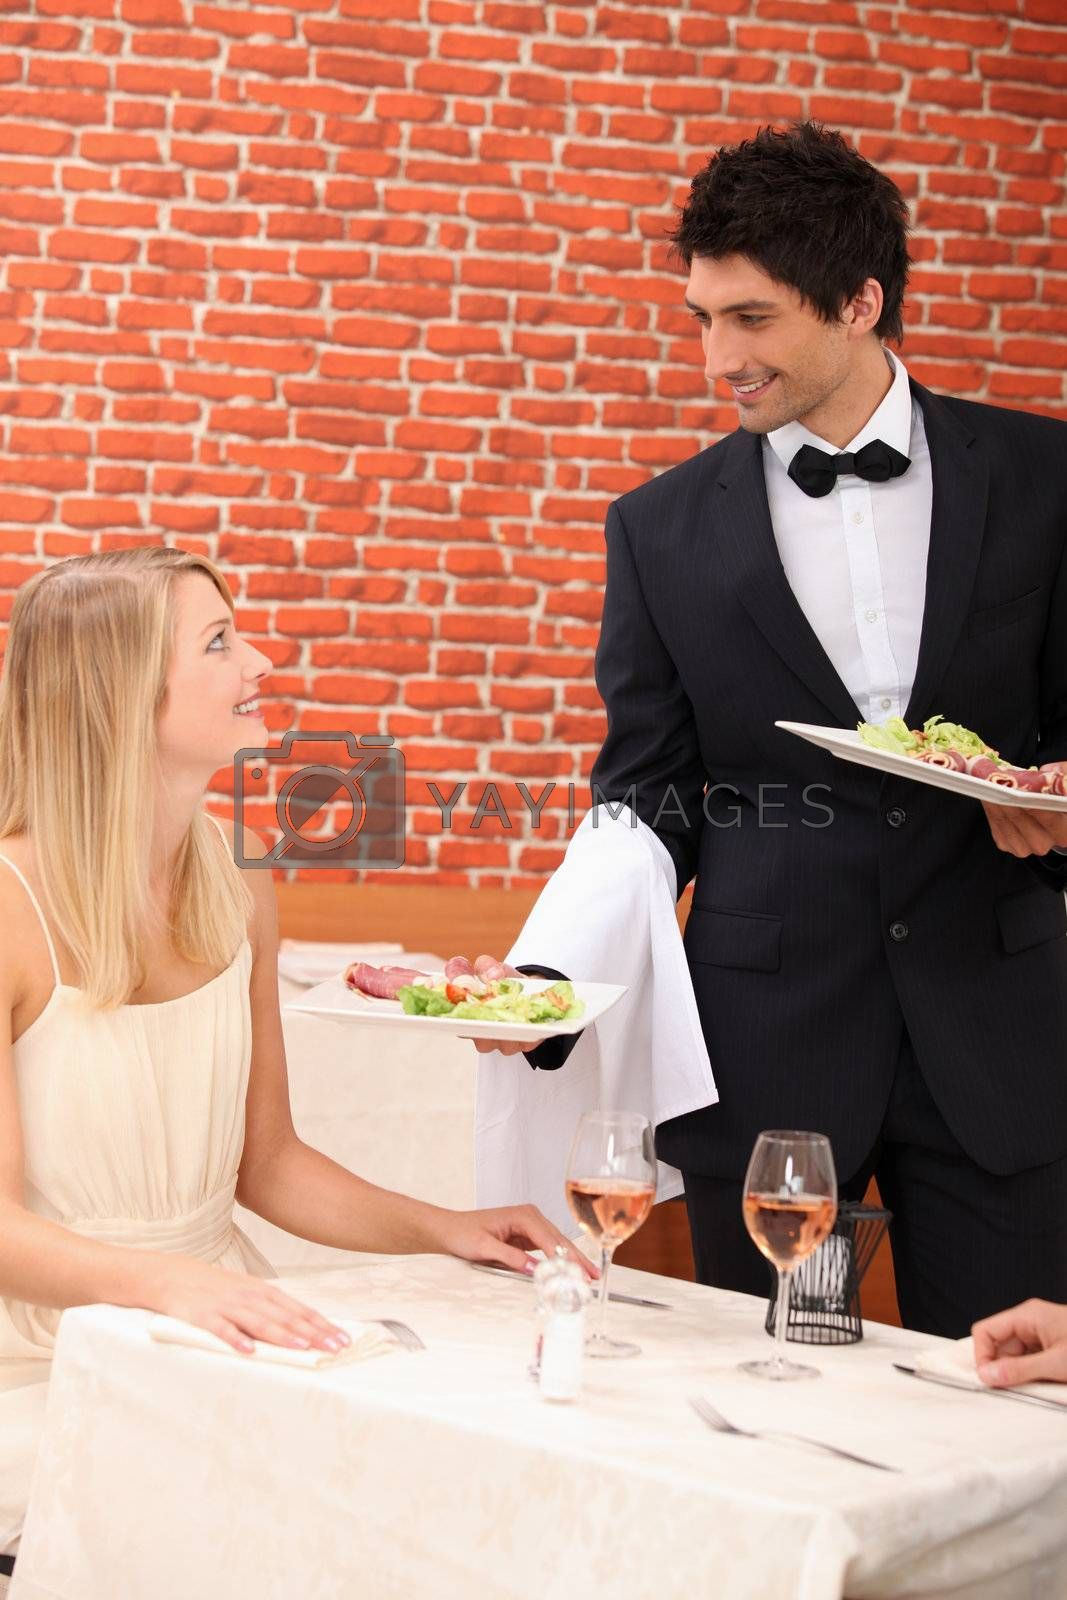 Waiter serving lunch